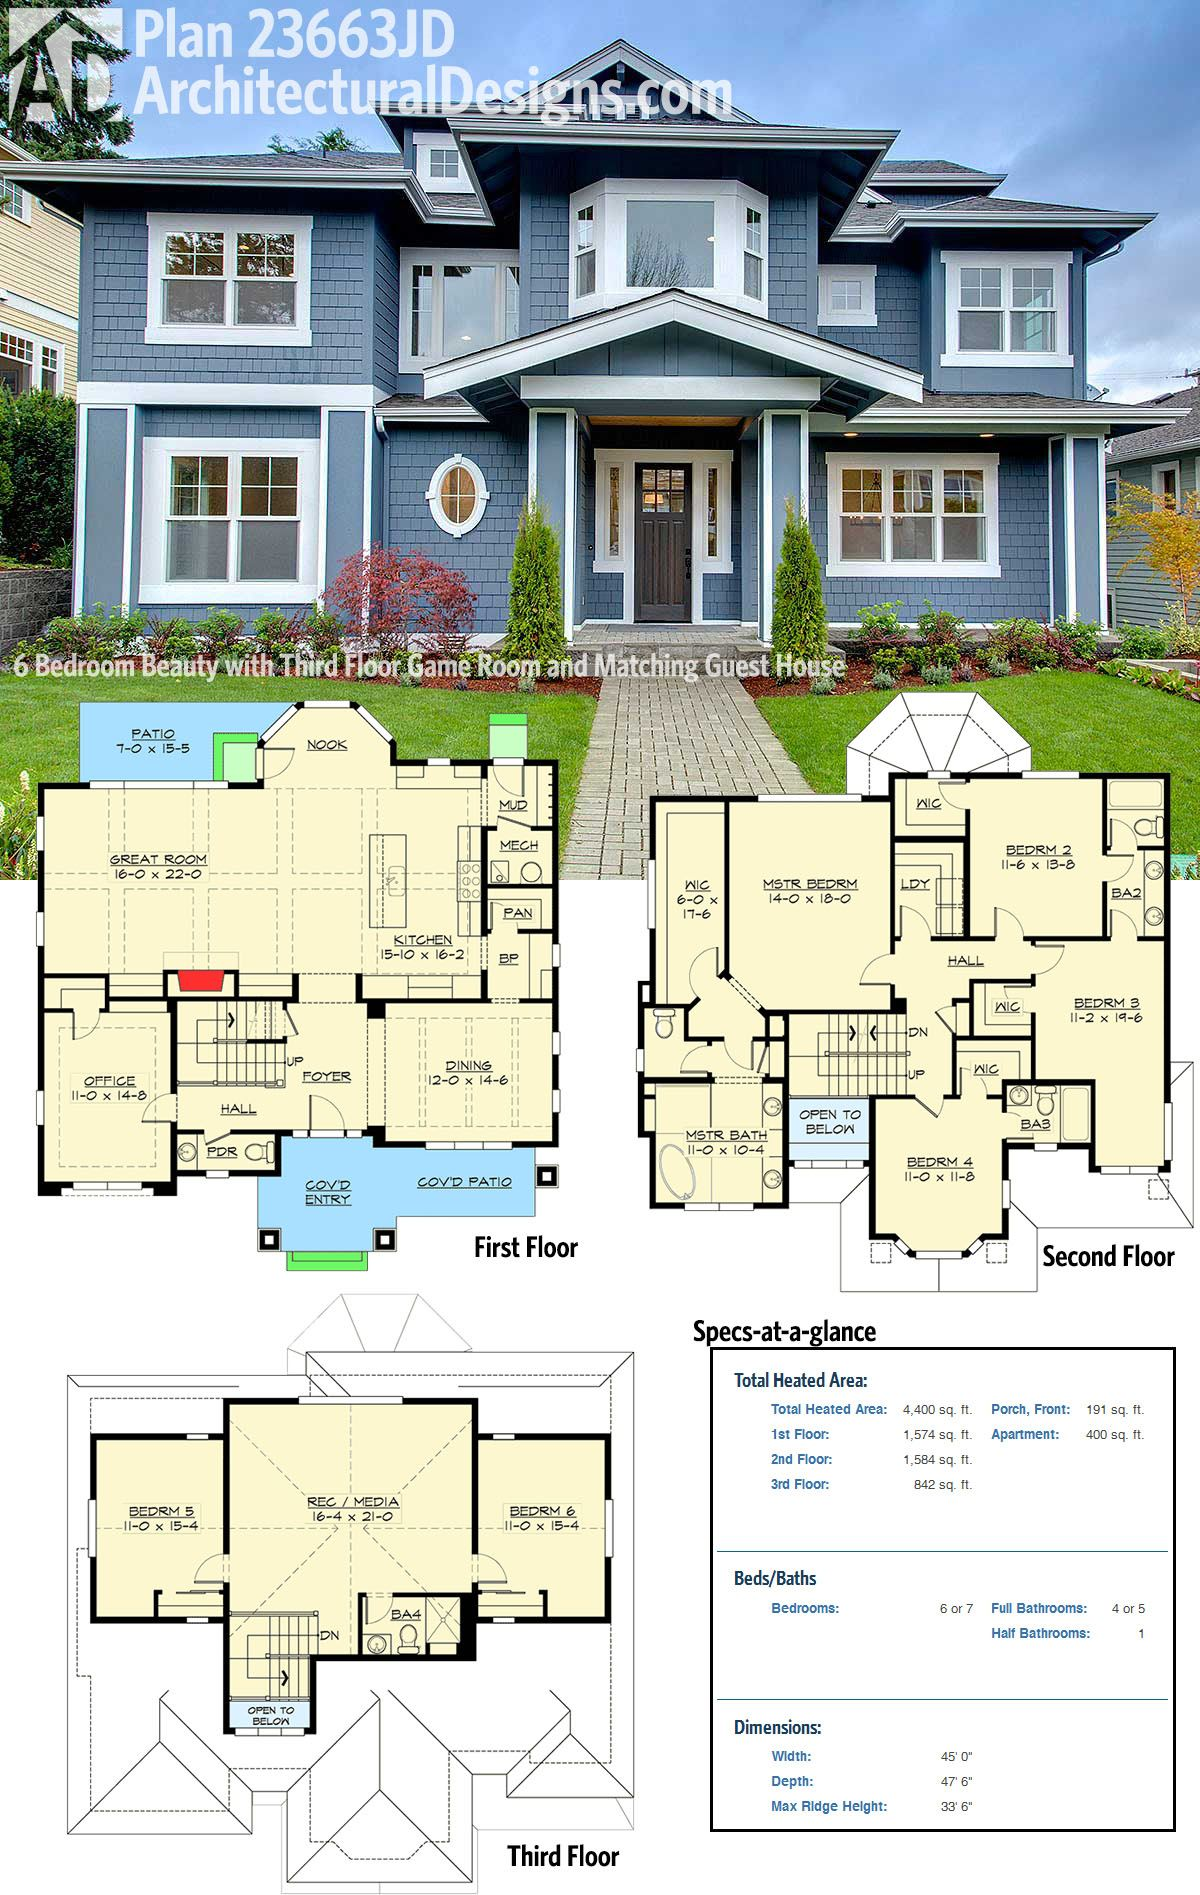 Plan 23663jd 6 bedroom beauty with third floor game room for Floor plans with guest house